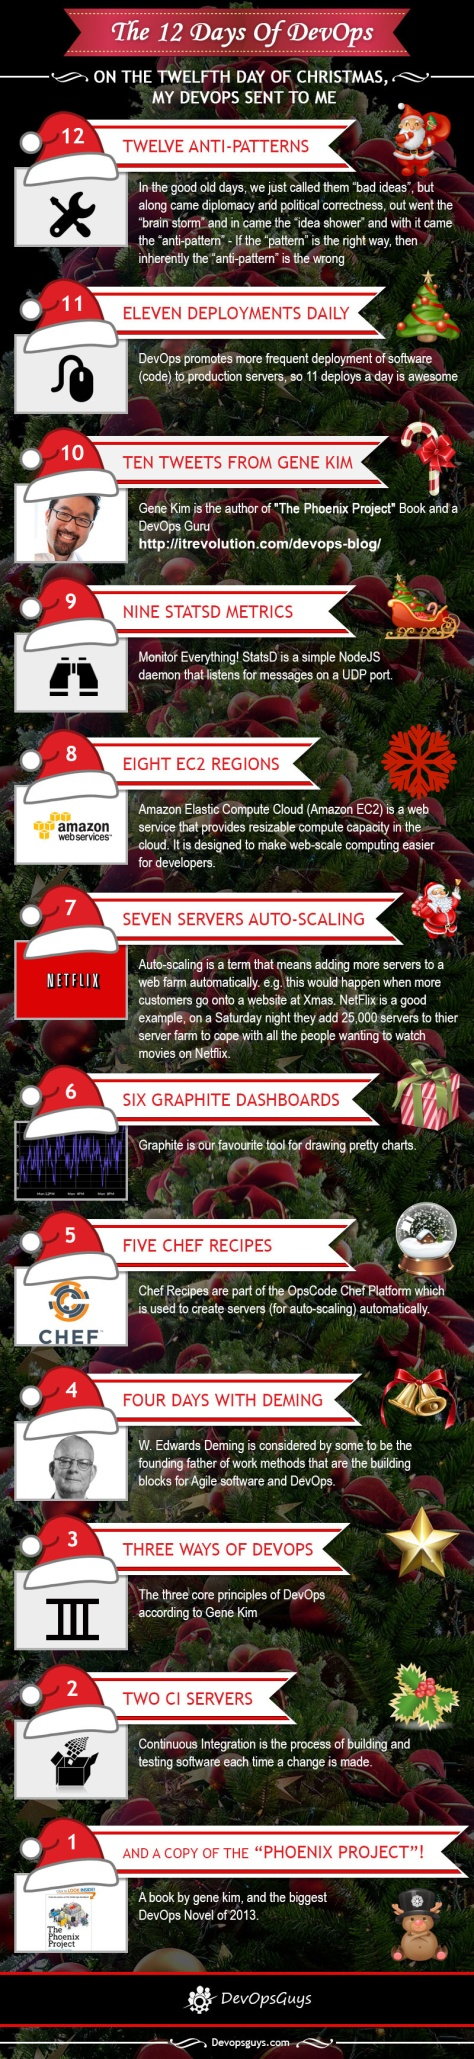 The 12 Days of DevOps